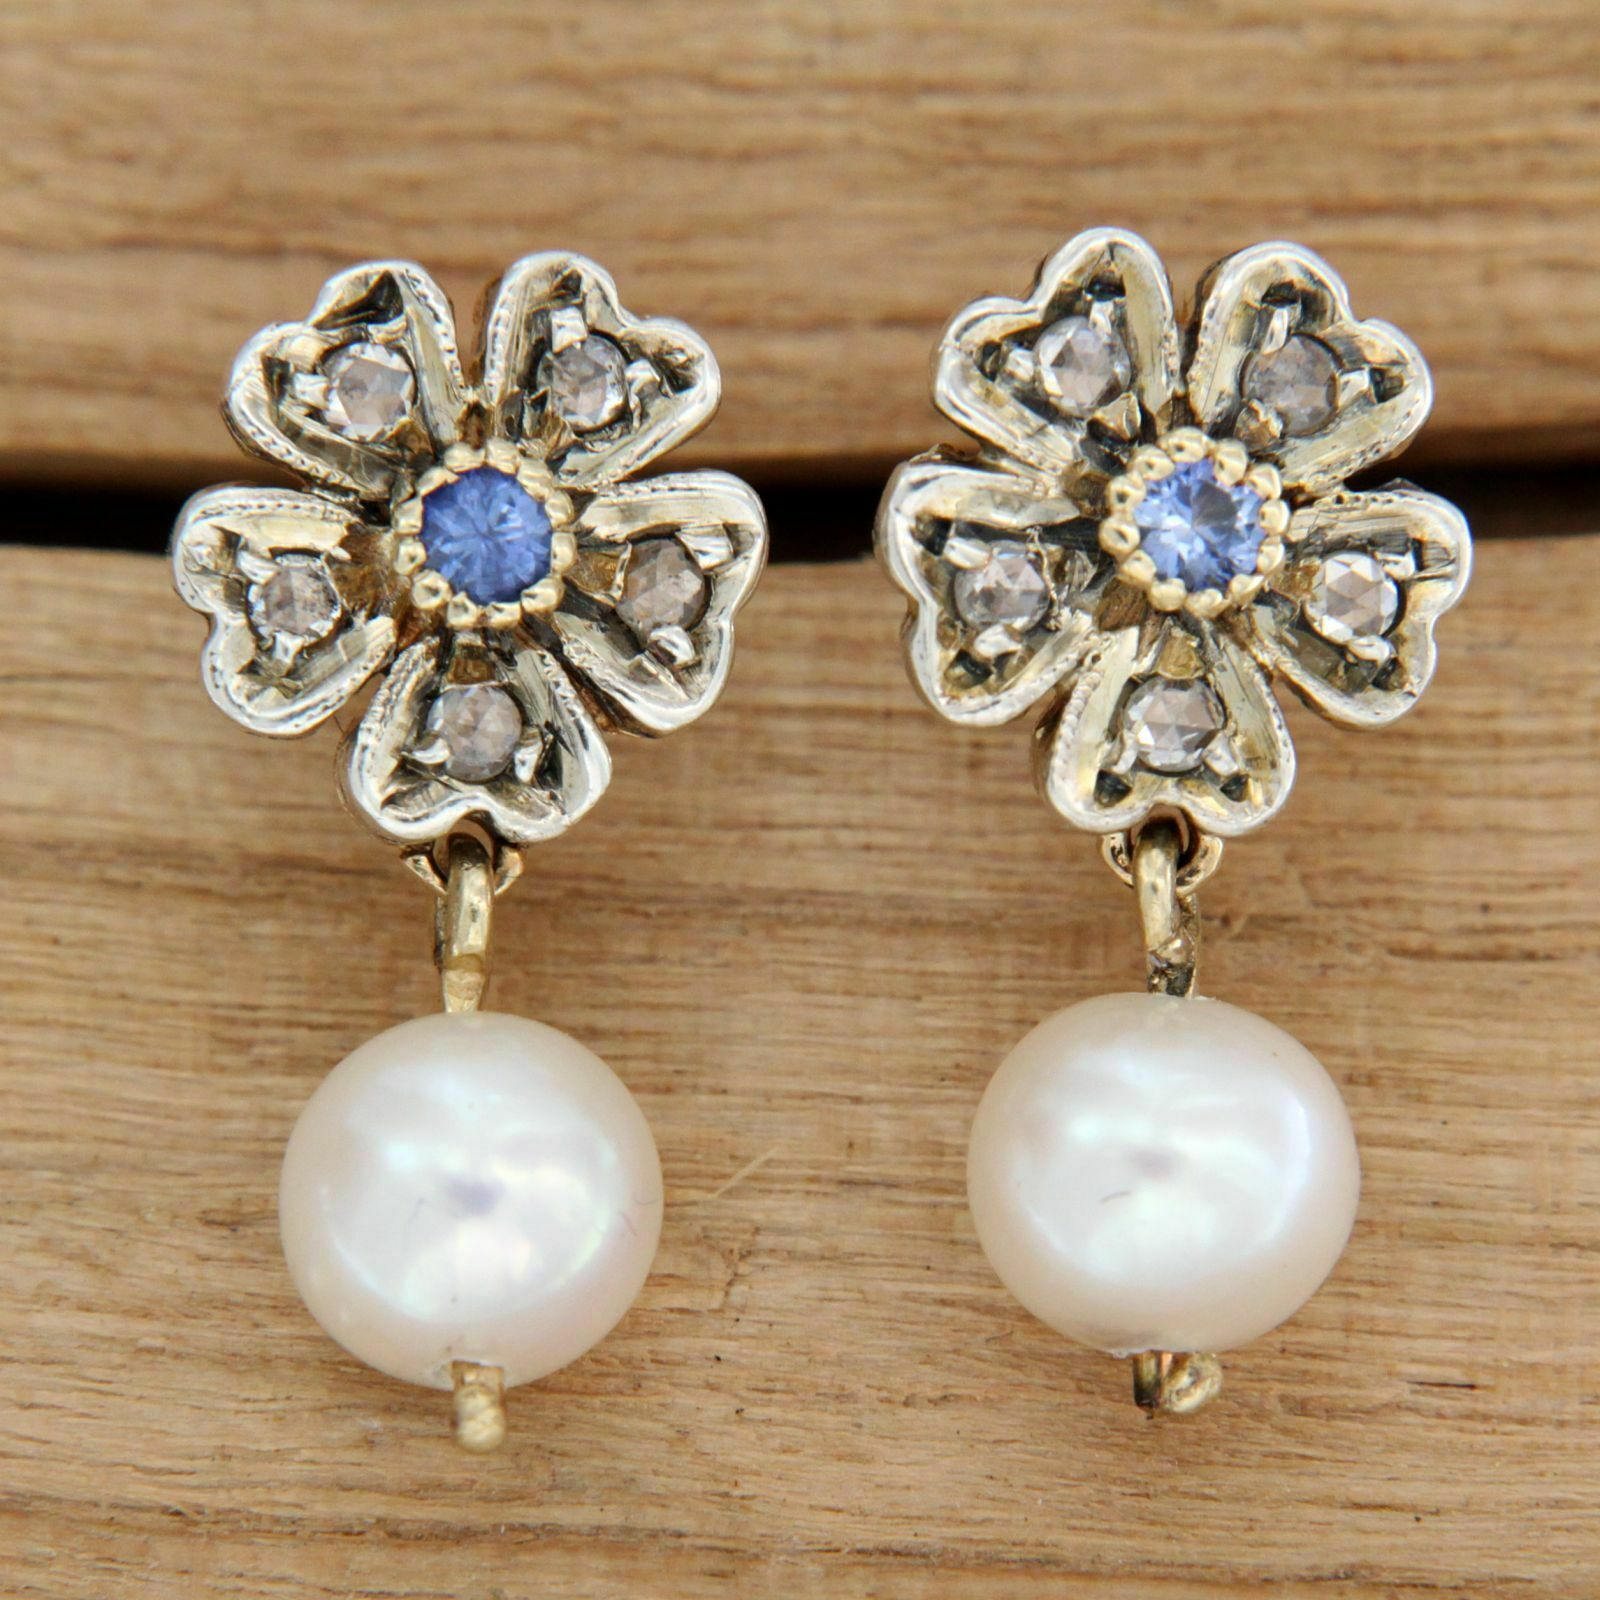 Yellow gold Earrings 14 Carats with Pearls Sapphires and Diamonds Flower-Shaped